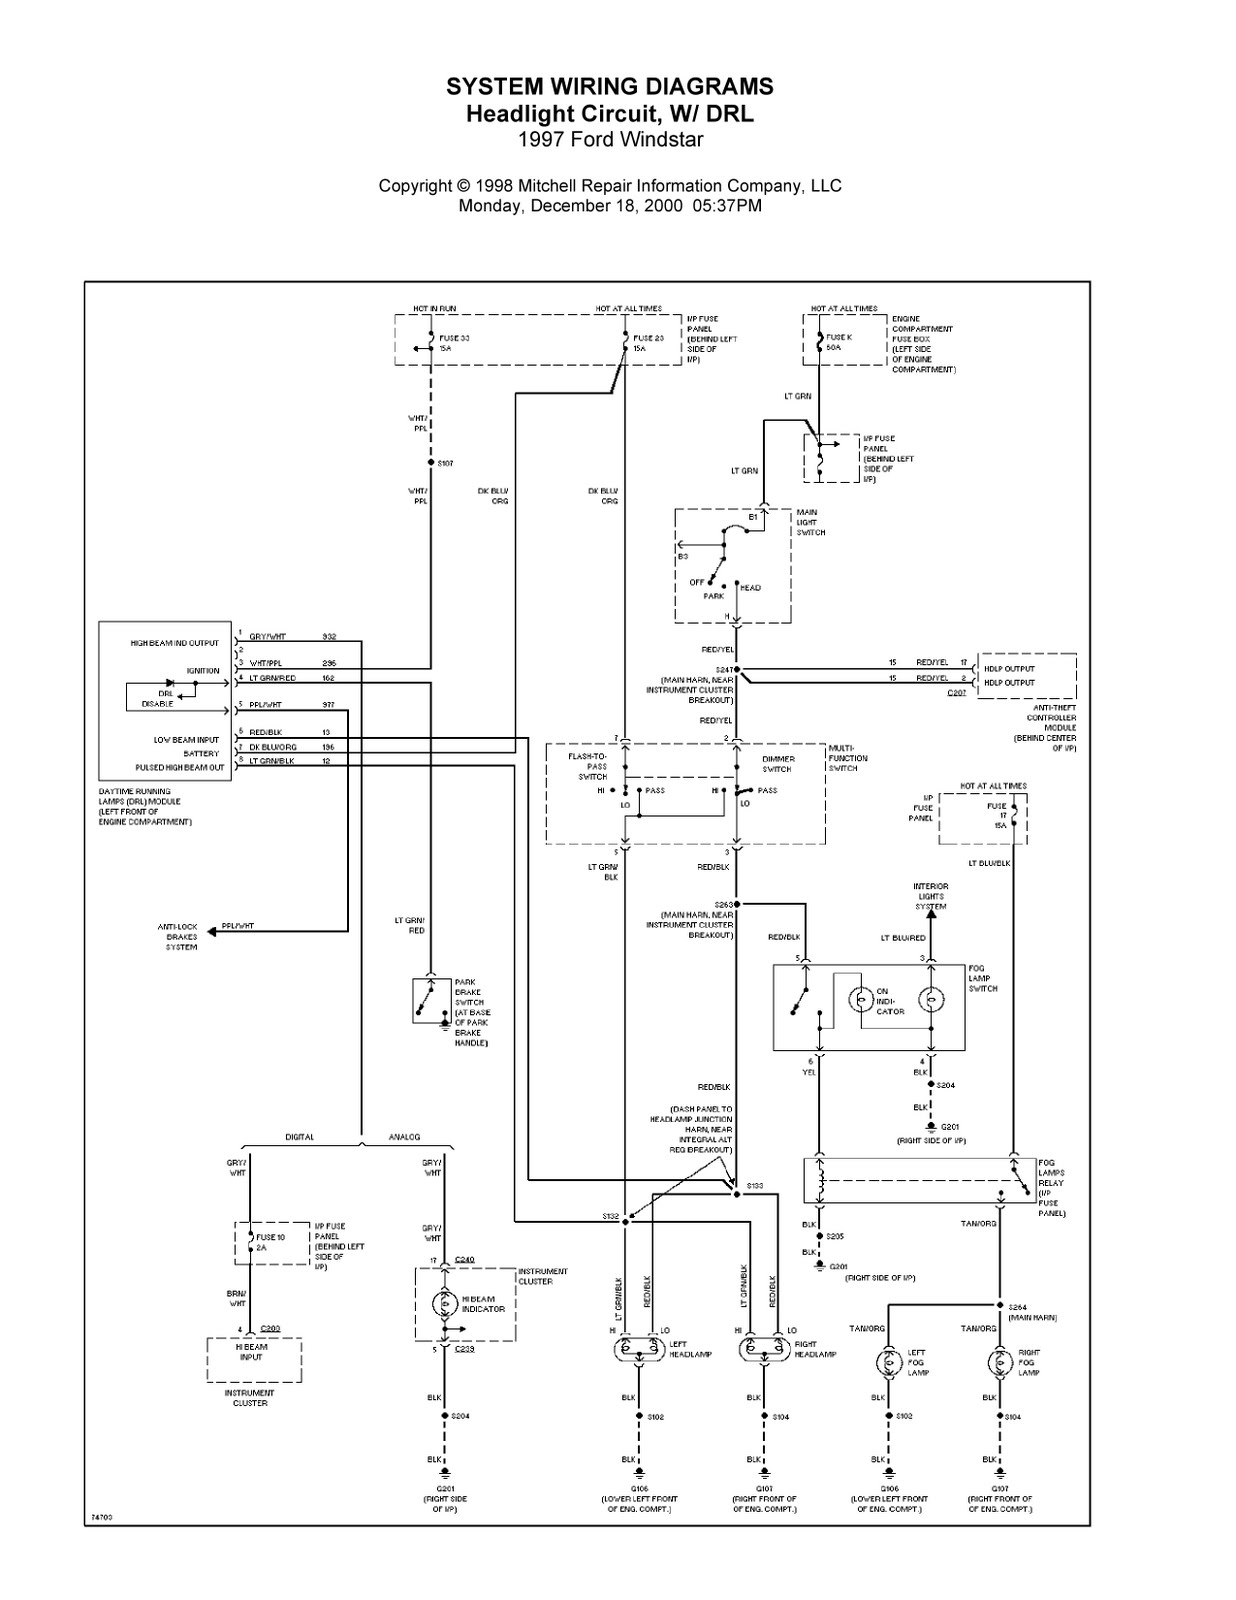 Complete System Wiring Diagrams 1997 Ford Windstar Real 1995 Diagram Engine 2003 Fuse